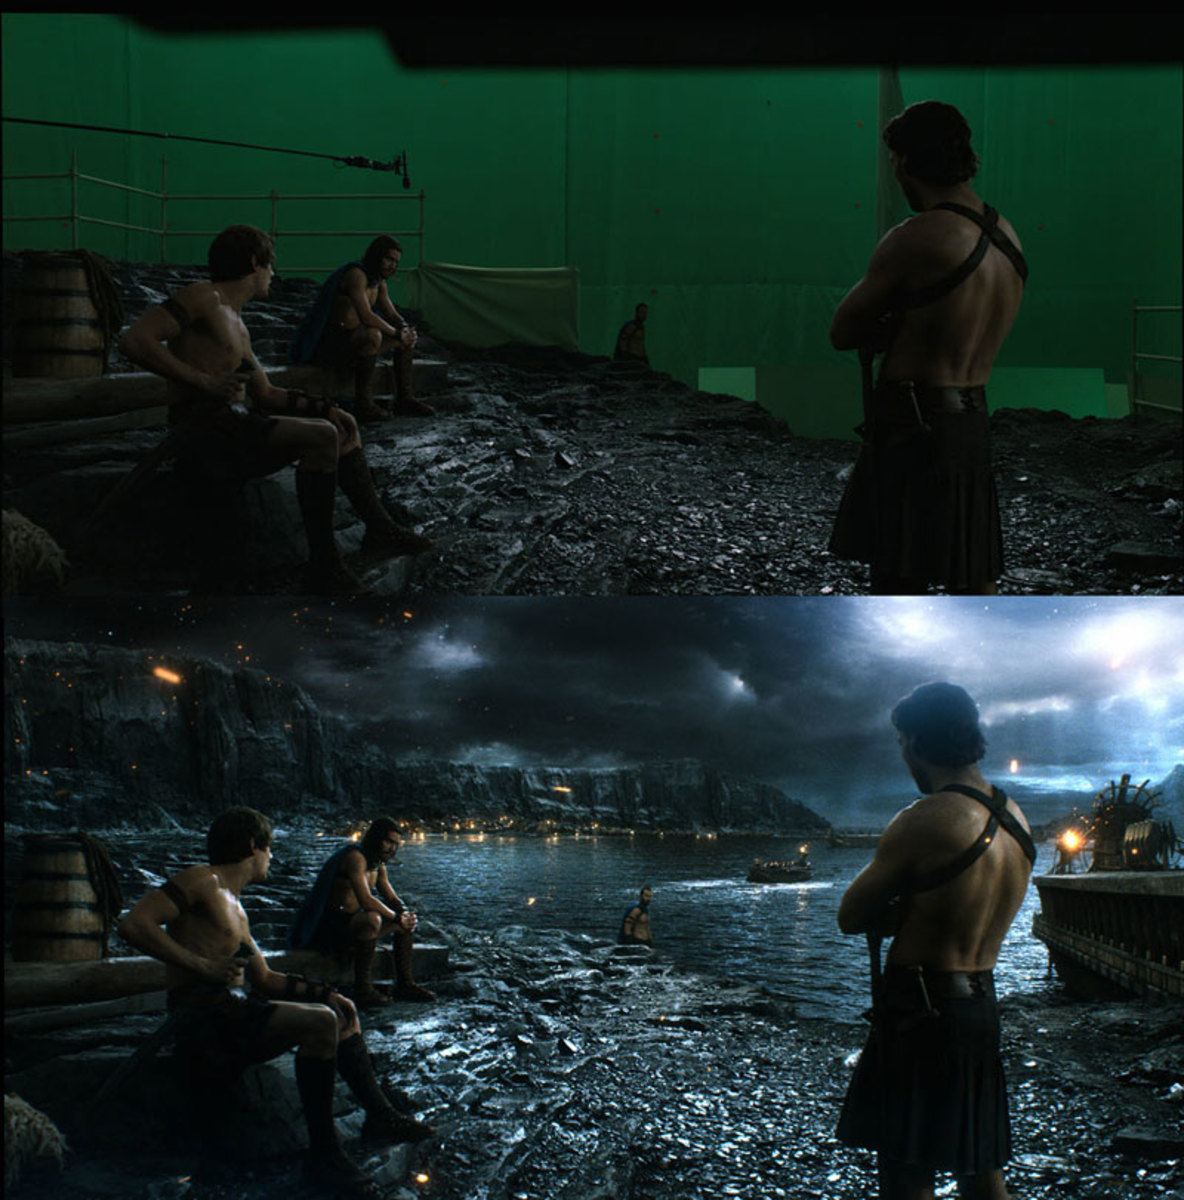 before-and-after-shots-that-demonstrate-the-power-of-visual-effects-28-1